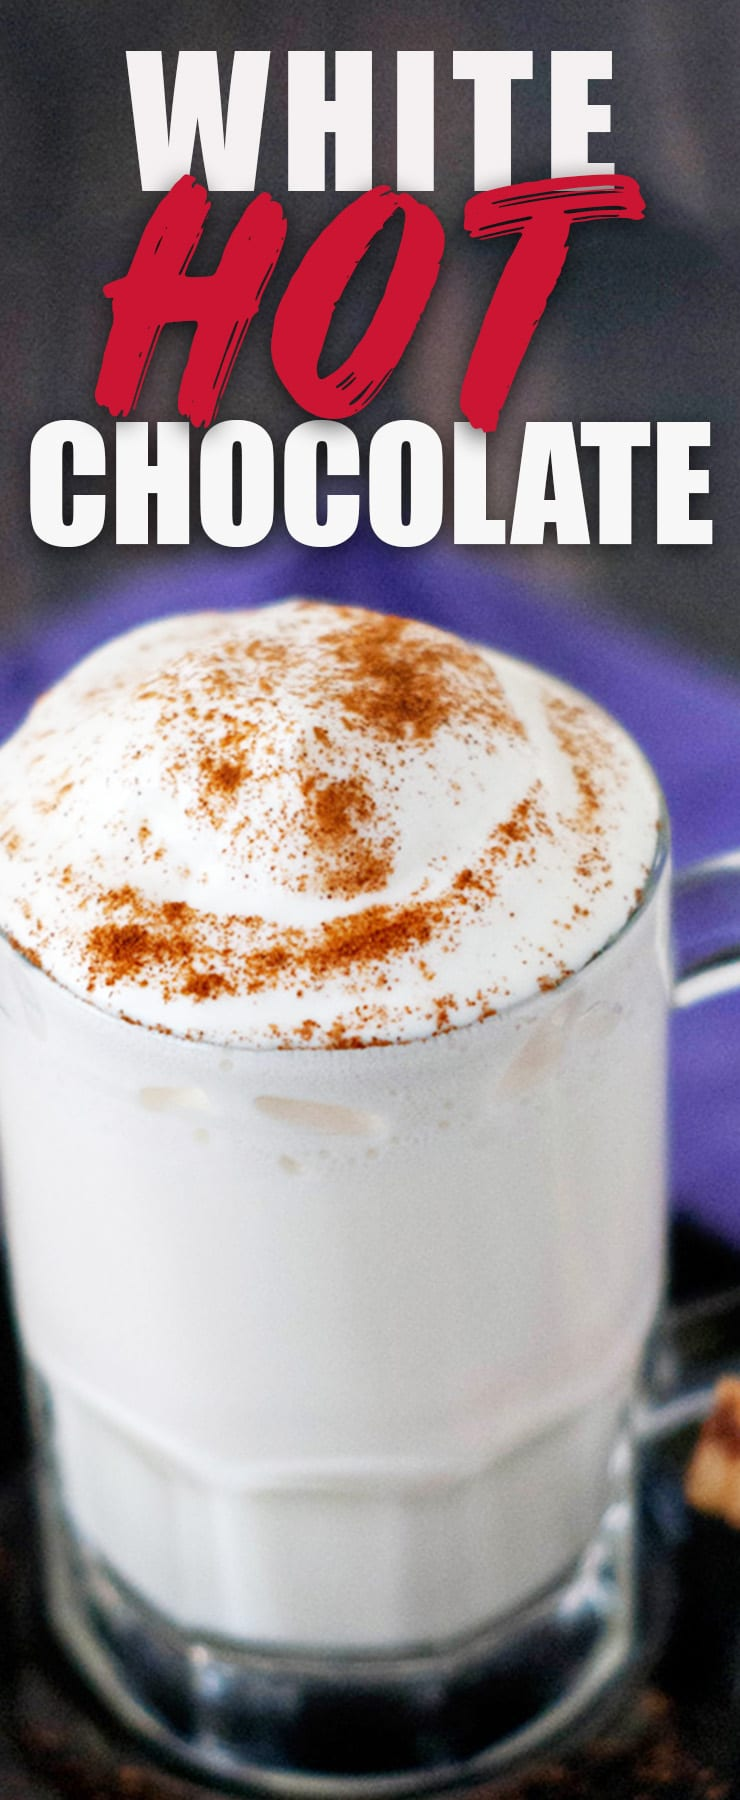 This white hot chocolate is what Christmas dreams are made of! Save your money and ditch Starbucks because with this easy recipe you can have homemade white hot chocolate in no time. You can even make it in the crock pot for company if you want! #hotchocolate #white #starbucks